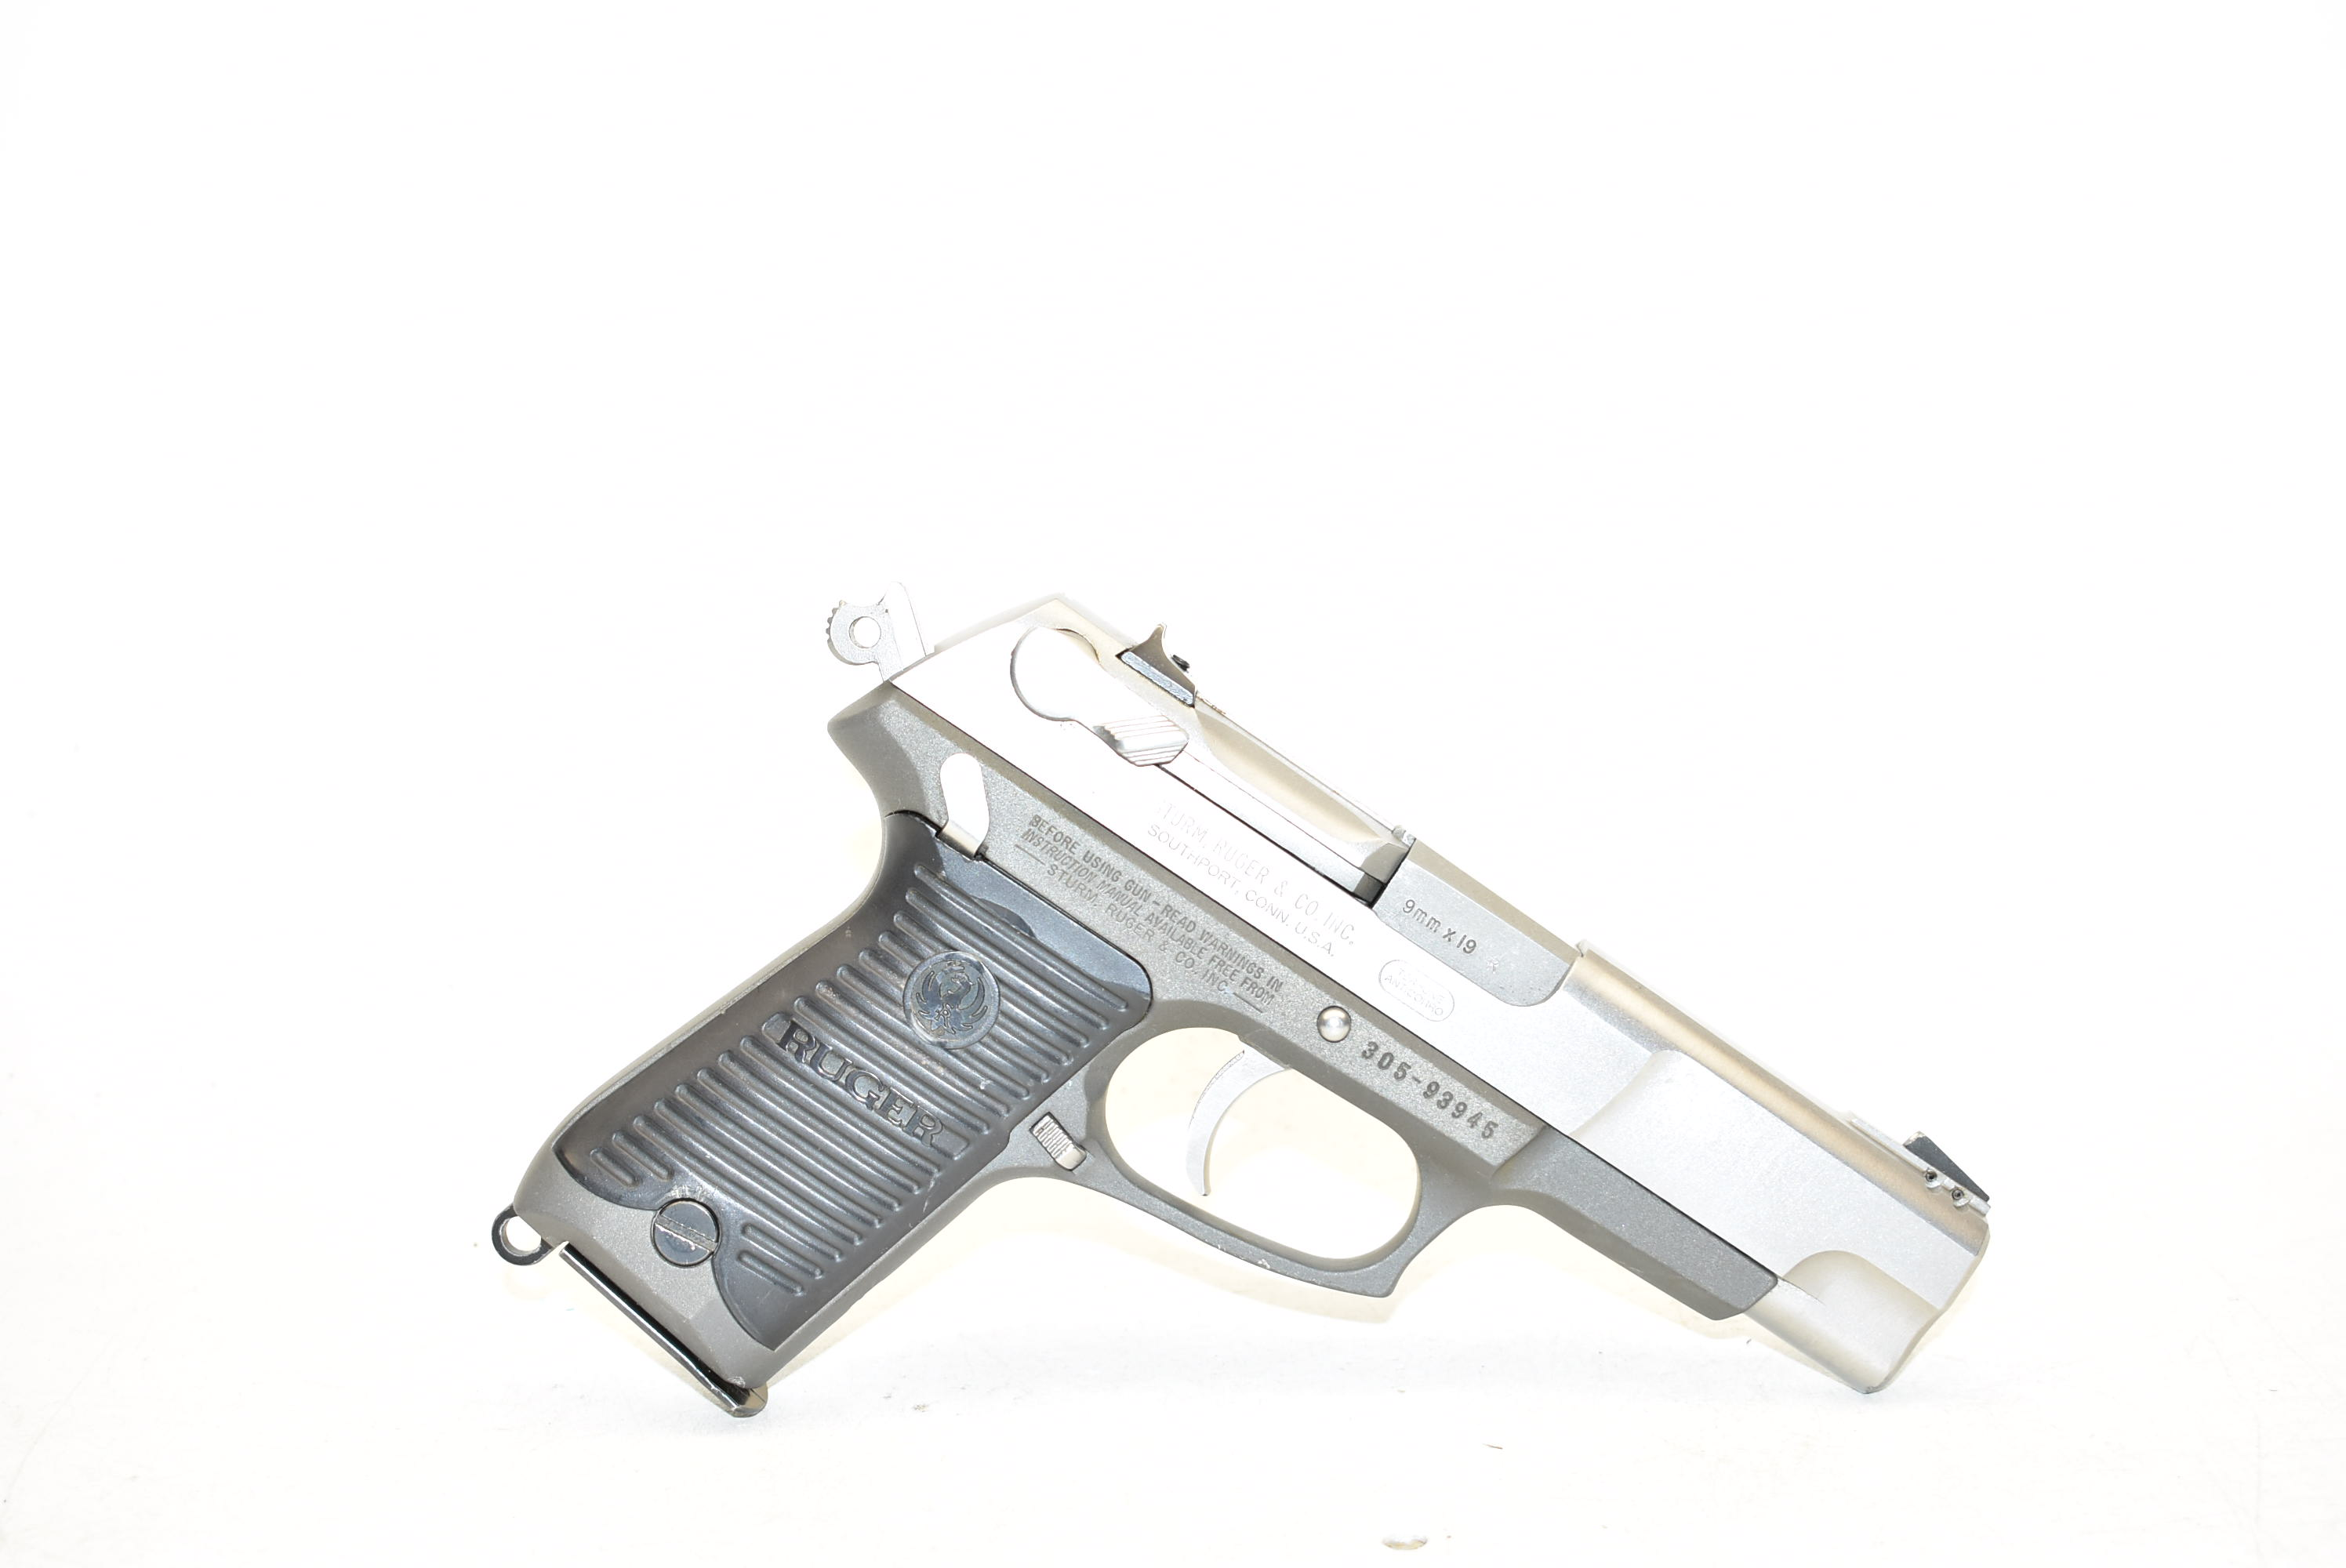 RUGER P89 9MM PARA (Auction ID: 14395549, End Time : Mar